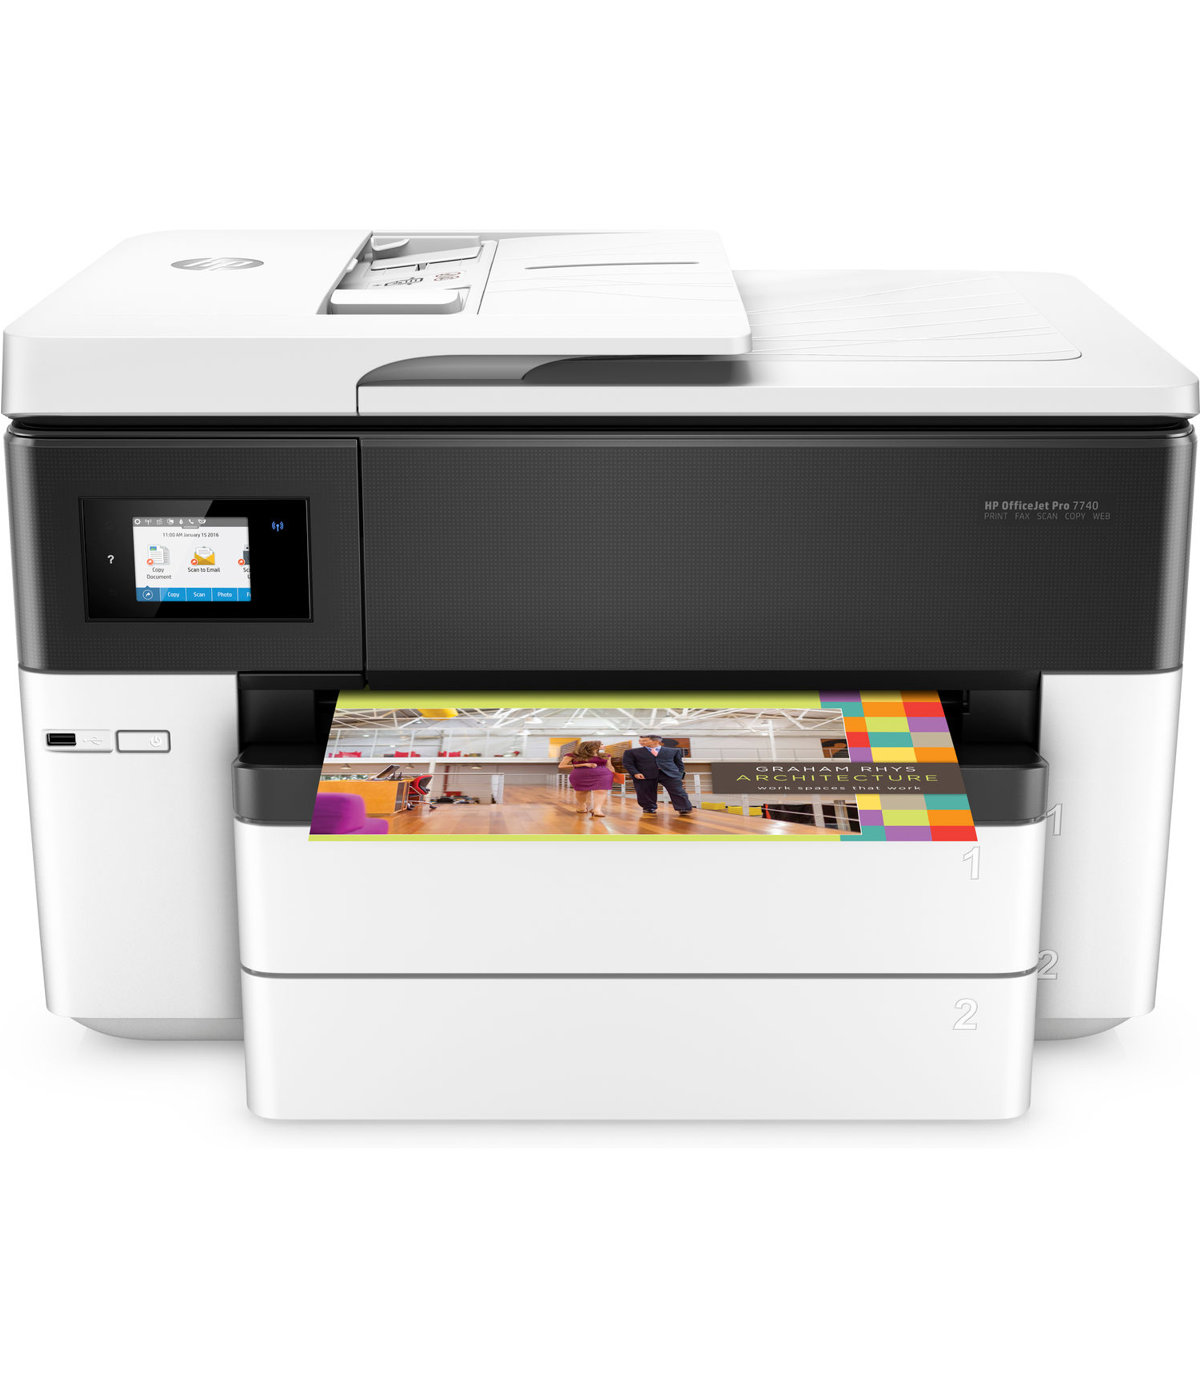 Hp m750 color printing cost per page - Be Best 11x17 Color Laser Printer Reviews Hp Officejet Pro 7740 Wireless Color 11 X